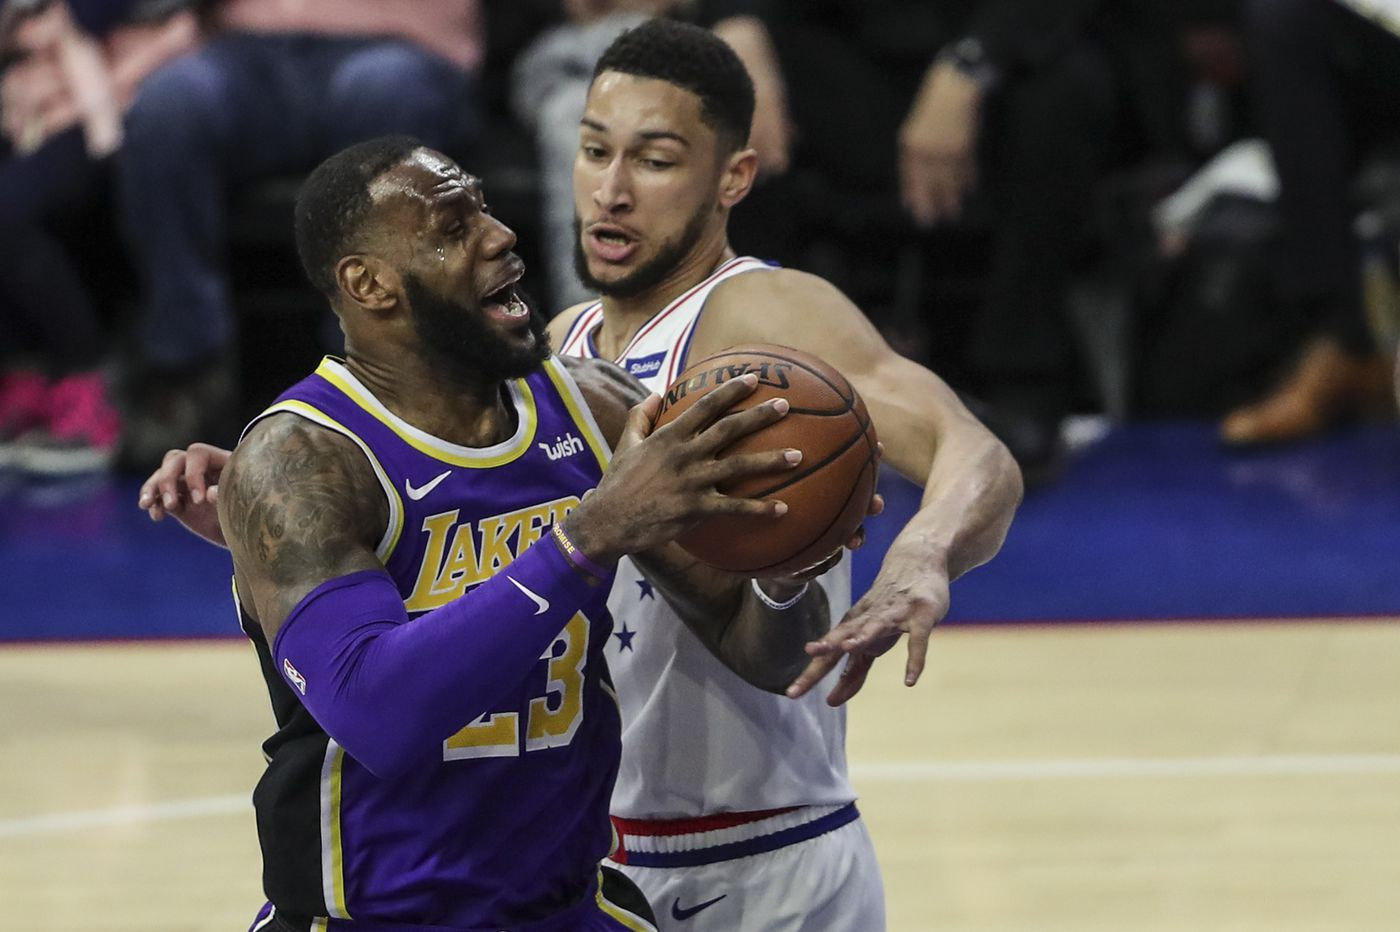 Sixers' Ben Simmons will have defensive reputation put to the test against L.A.'s LeBron James